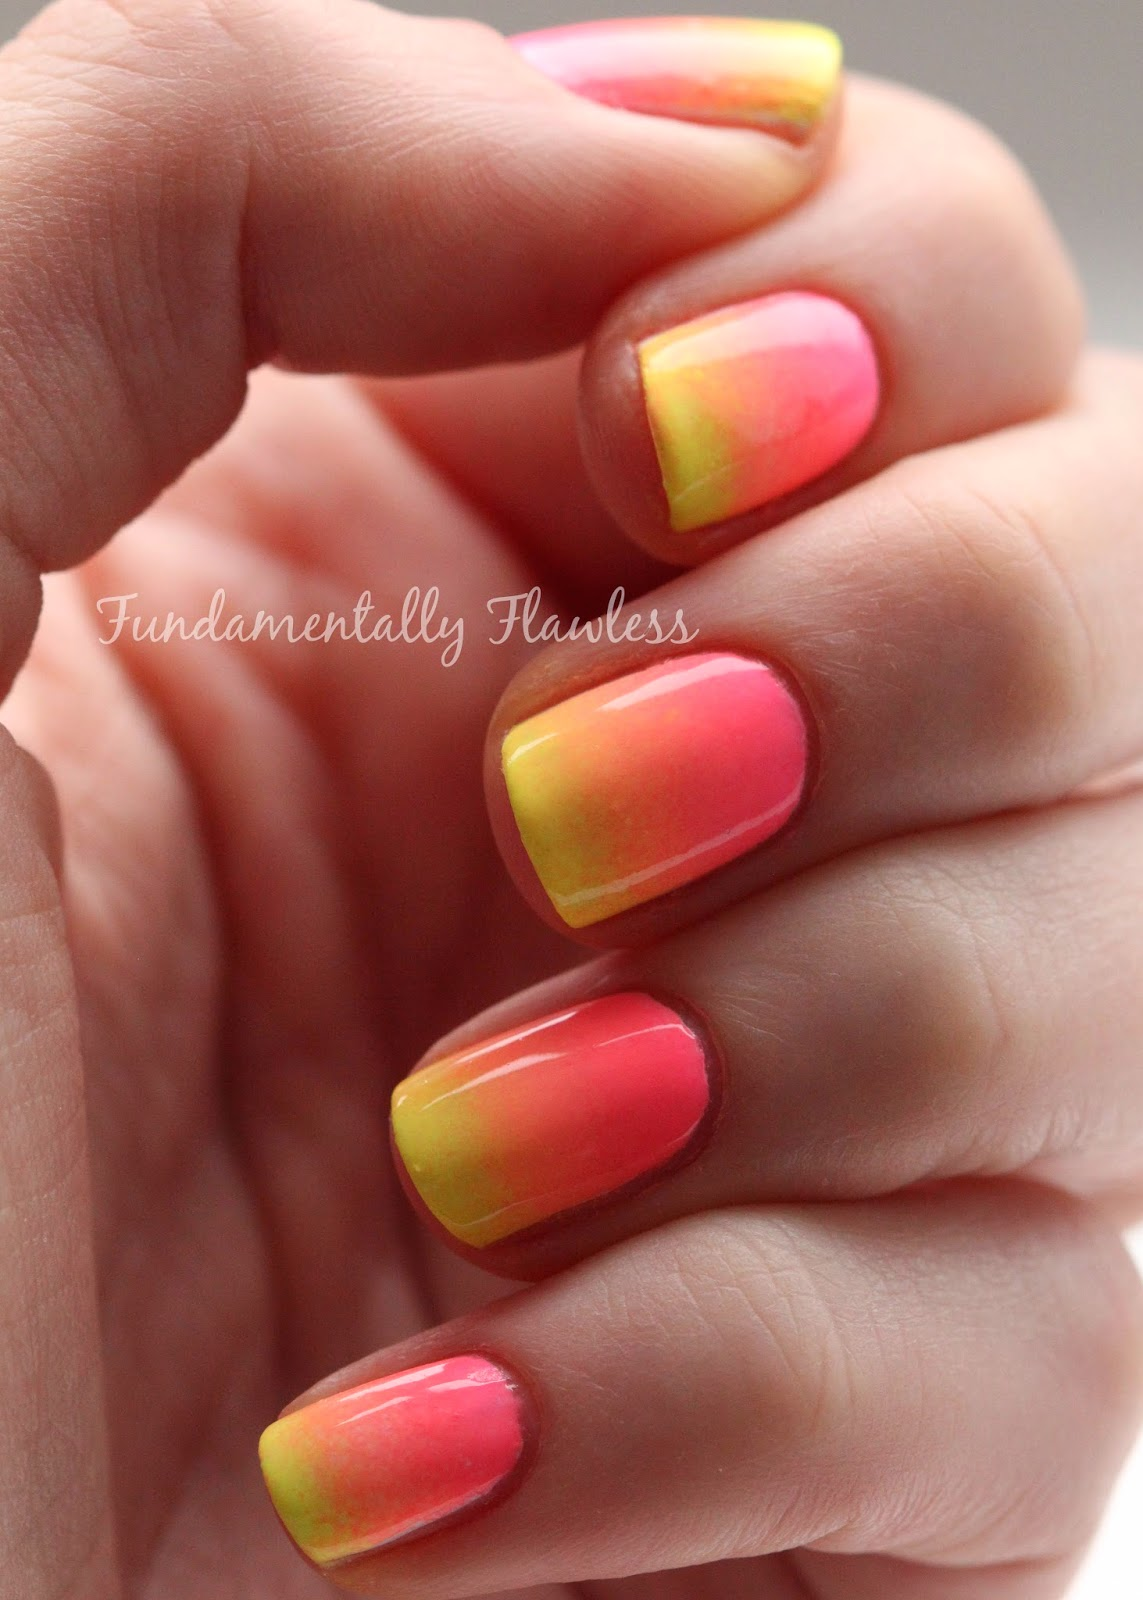 Fundamentally Flawless: Butterfly Wing Nail Art With